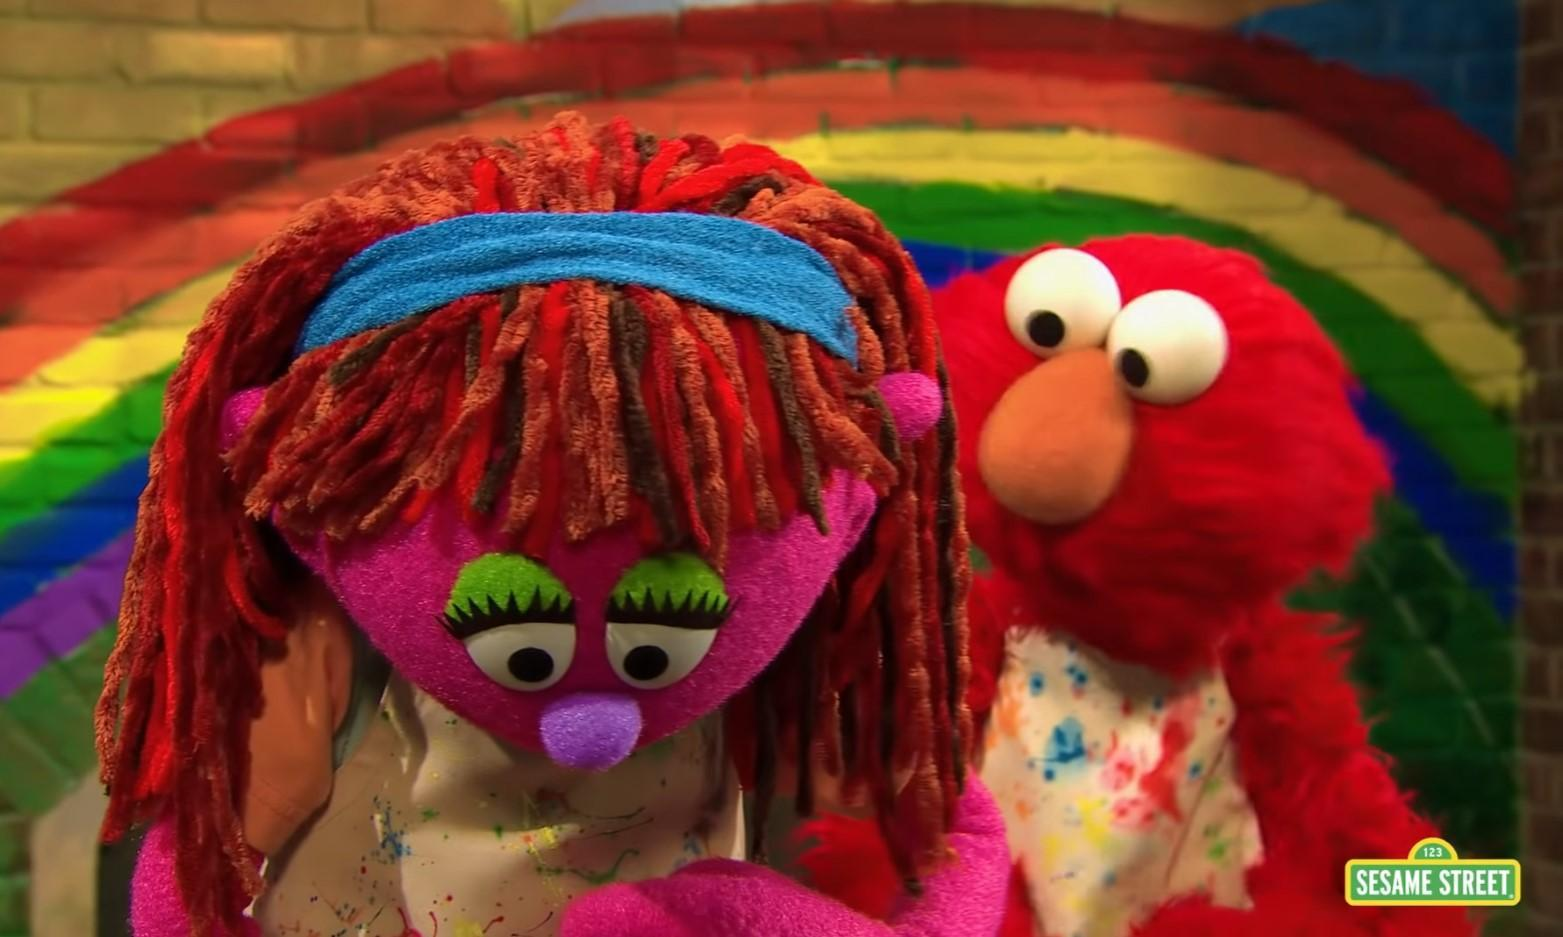 Sesame Street introduces the First Ever Homeless Muppet Lily